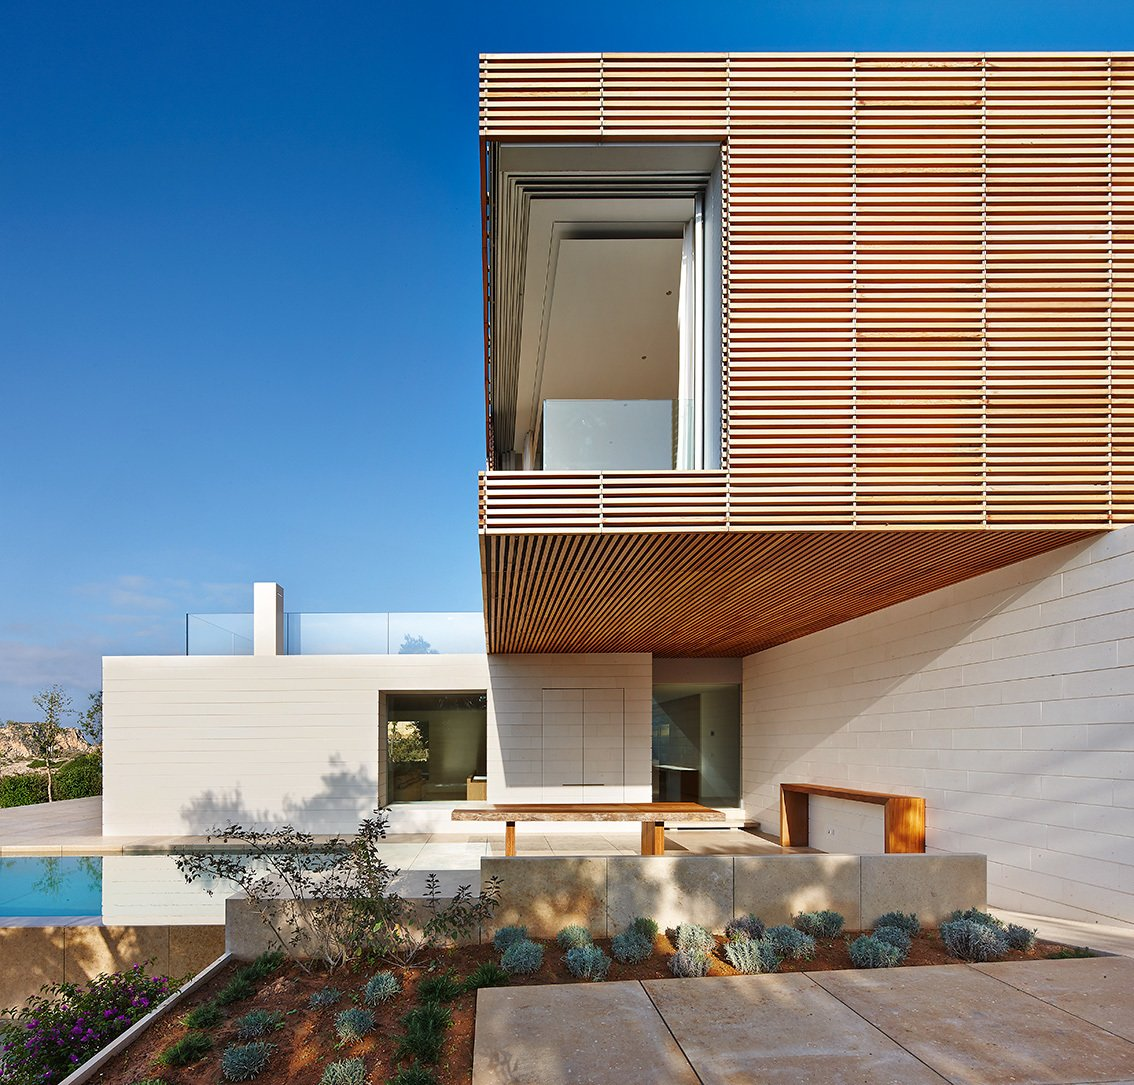 Casa Lama in Mallorca, Spain Tagged: Outdoor, Infinity Pools, Tubs, Shower, Concrete Patio, Porch, Deck, Tile Patio, Porch, Deck, Hardscapes, and Back Yard.  Photo 10 of 11 in Dwell's Top 10 Design Pros of 2017 from Homes I like